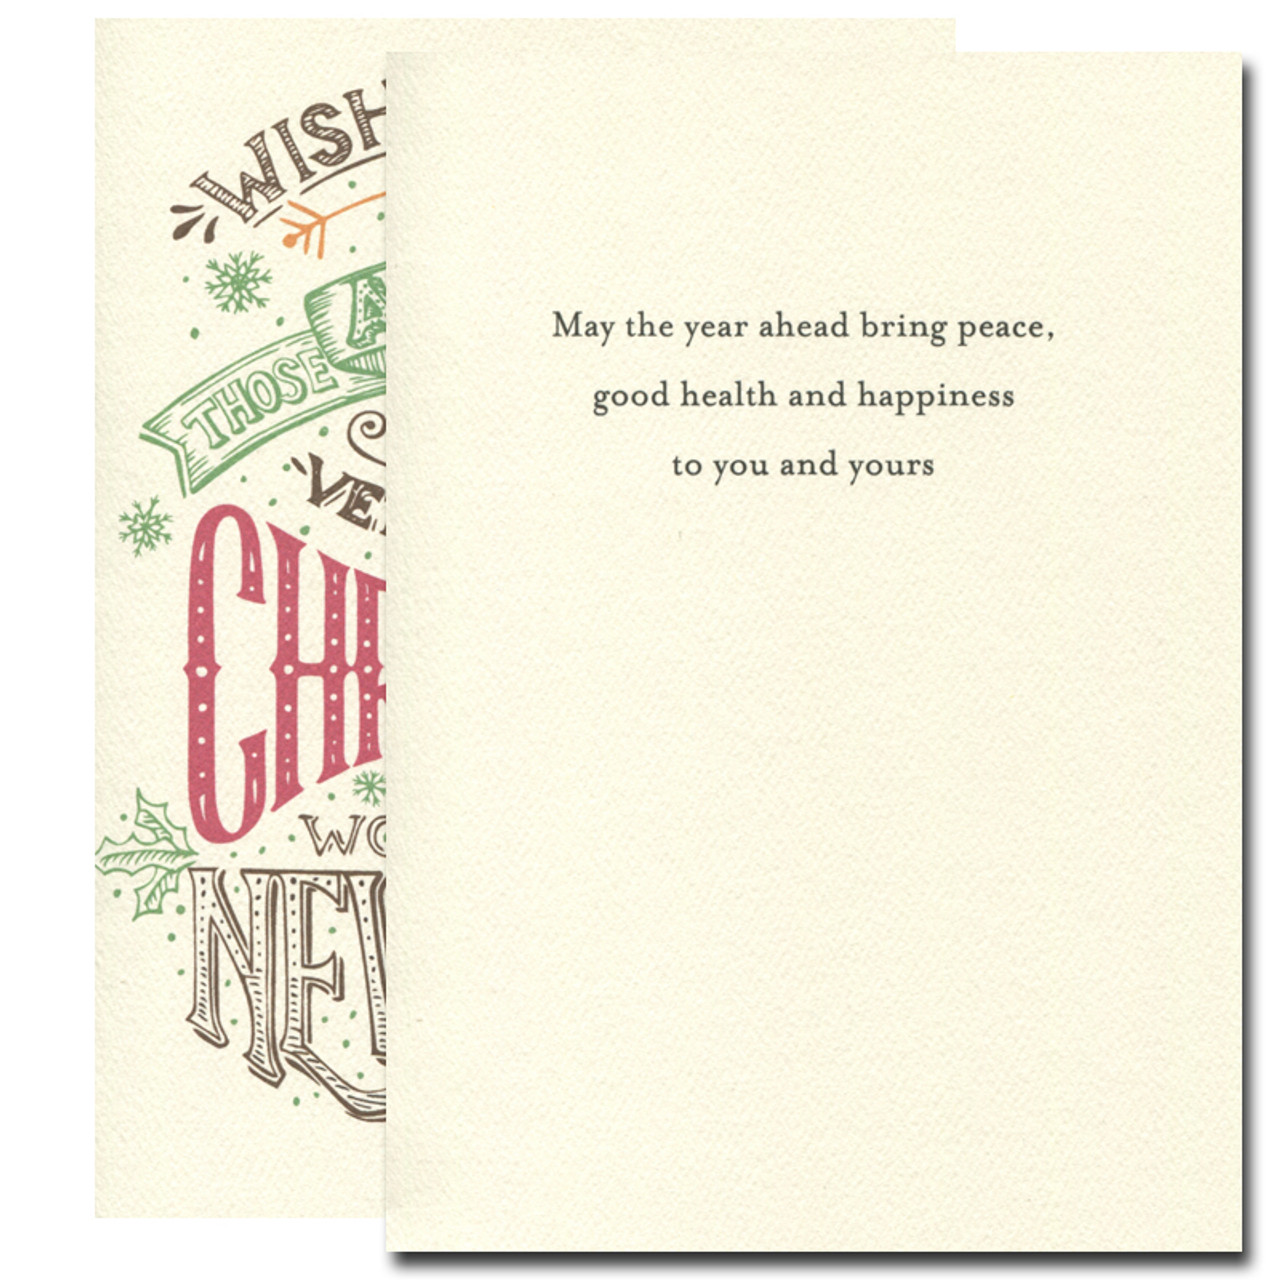 Very Merry Holiday Card inside reads: May the year ahead bring peace, good health and happiness to you and yours